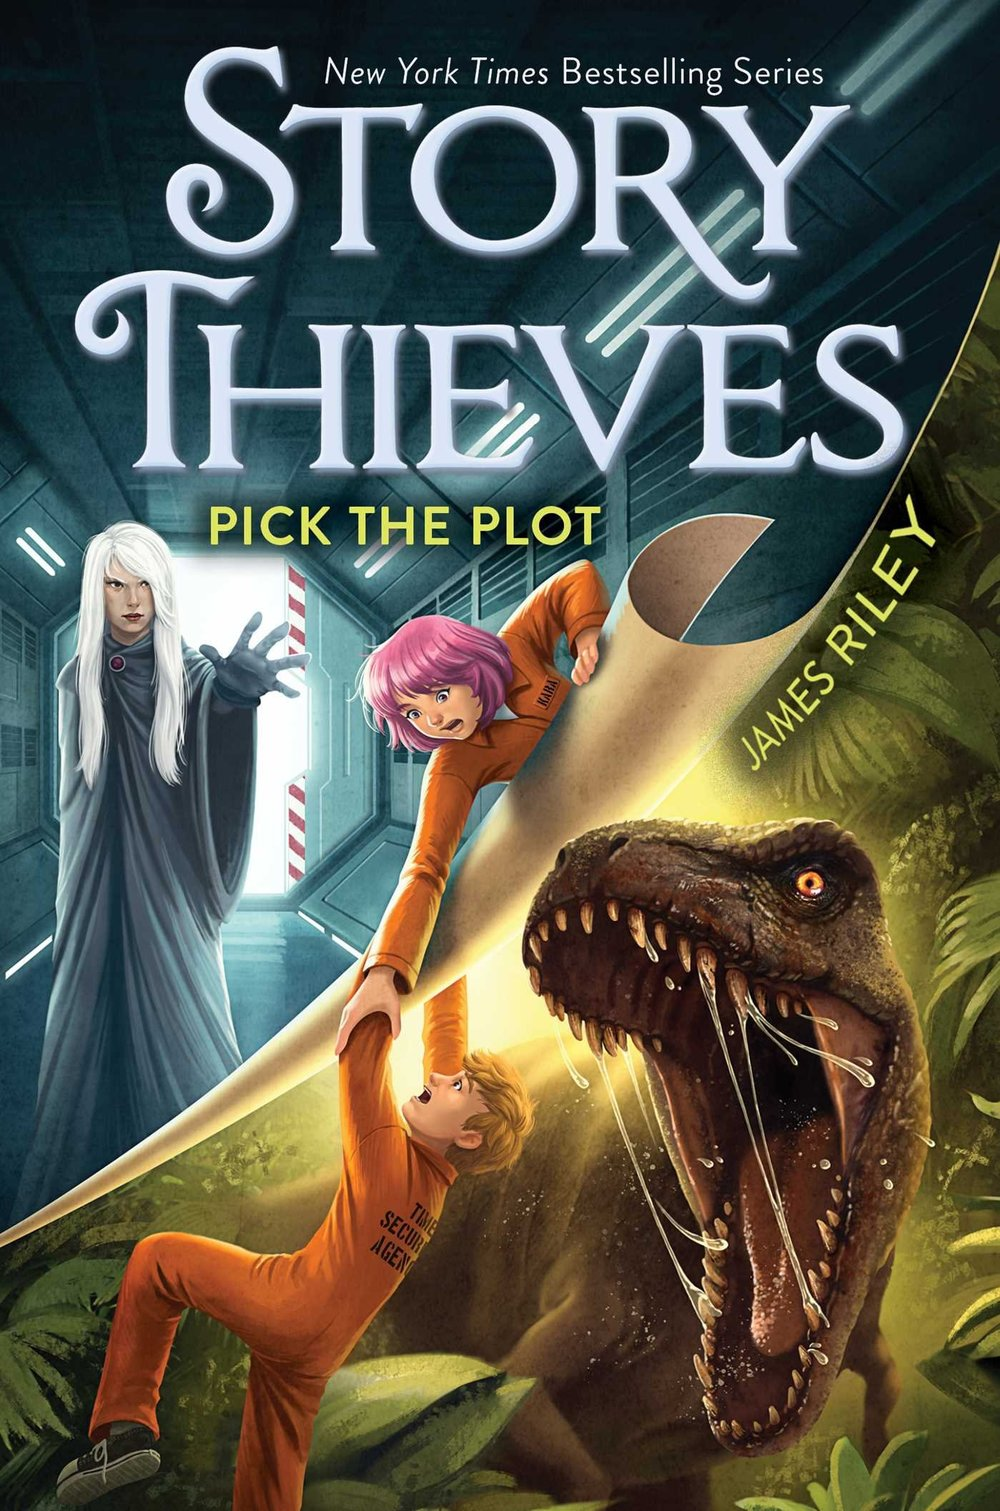 STORY THIEVES: PICK THE PLOT (BOOK 4) - Being able to jump into books used to seem like the greatest thing in the world to Owen Conners. But now Owen's trapped in a time travel book where readers—that would be you—decide how the story goes.As if that weren't enough, Owen's also stuck in a prison for time criminals in a prehistoric era. He's surrounded by bizarre fellow prisoners, including Kara Dox. How does Kara recognize Owen if they've never met before? She seems to think they're old friends, but that can't be possible. Still, Kara might just be the only chance Owen has to escape. And he has to find a way out to save his friend Bethany, who's still in grave danger. Because unless Owen can stop him, Nobody is going to split Bethany into two, separating the fictional and nonfictional worlds forever.Will Owen be able to convince you, the reader, to help him find his way back to Bethany? Or will you feed him to dinosaurs just to teach him a lesson? It's all up to you when you Pick the Plot.BUY: AMAZON | BARNES & NOBLE | INDEPENDENT STORES